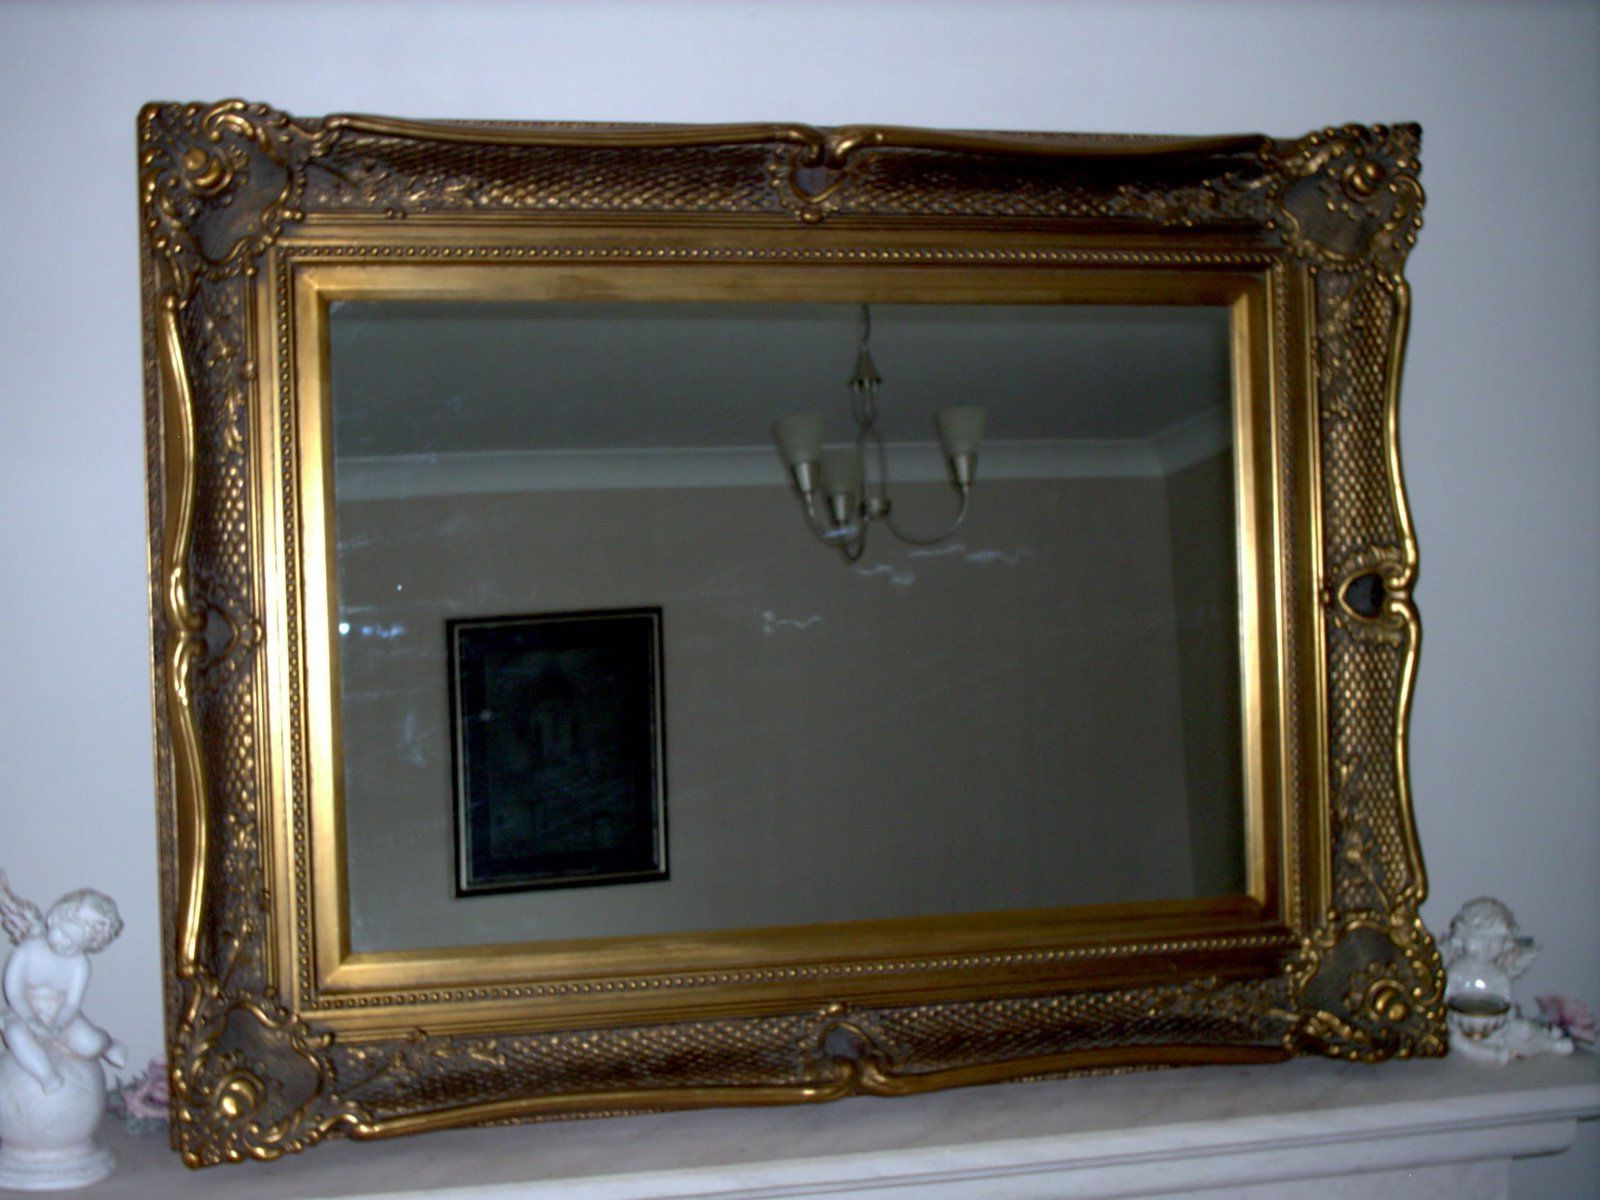 Fabulous Large Antique Gold Wall Mirror With Wide Decorative Frame Within Recent Large Vintage Wall Mirrors (View 19 of 20)